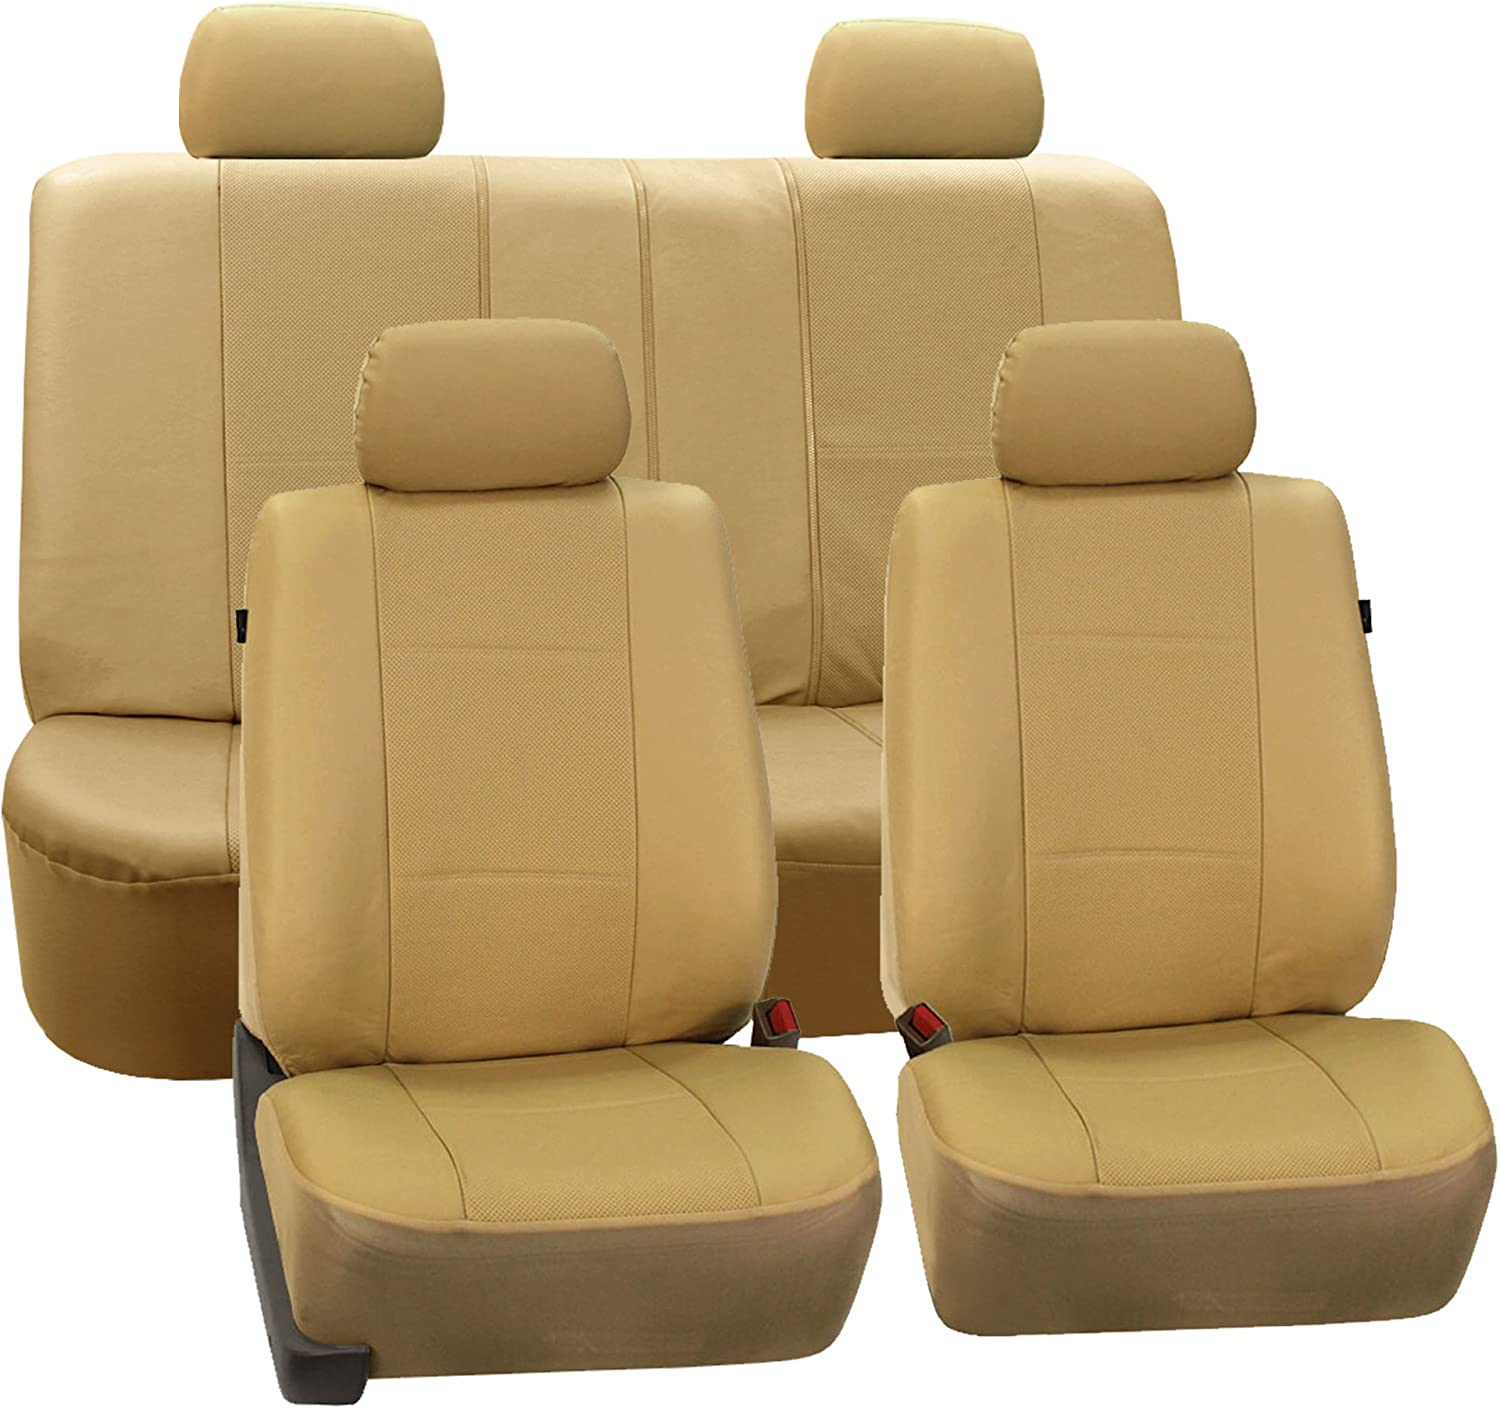 FH-PU007114 Deluxe San Francisco Mall Leatherette Car Seat Airbag unisex Ready Covers and